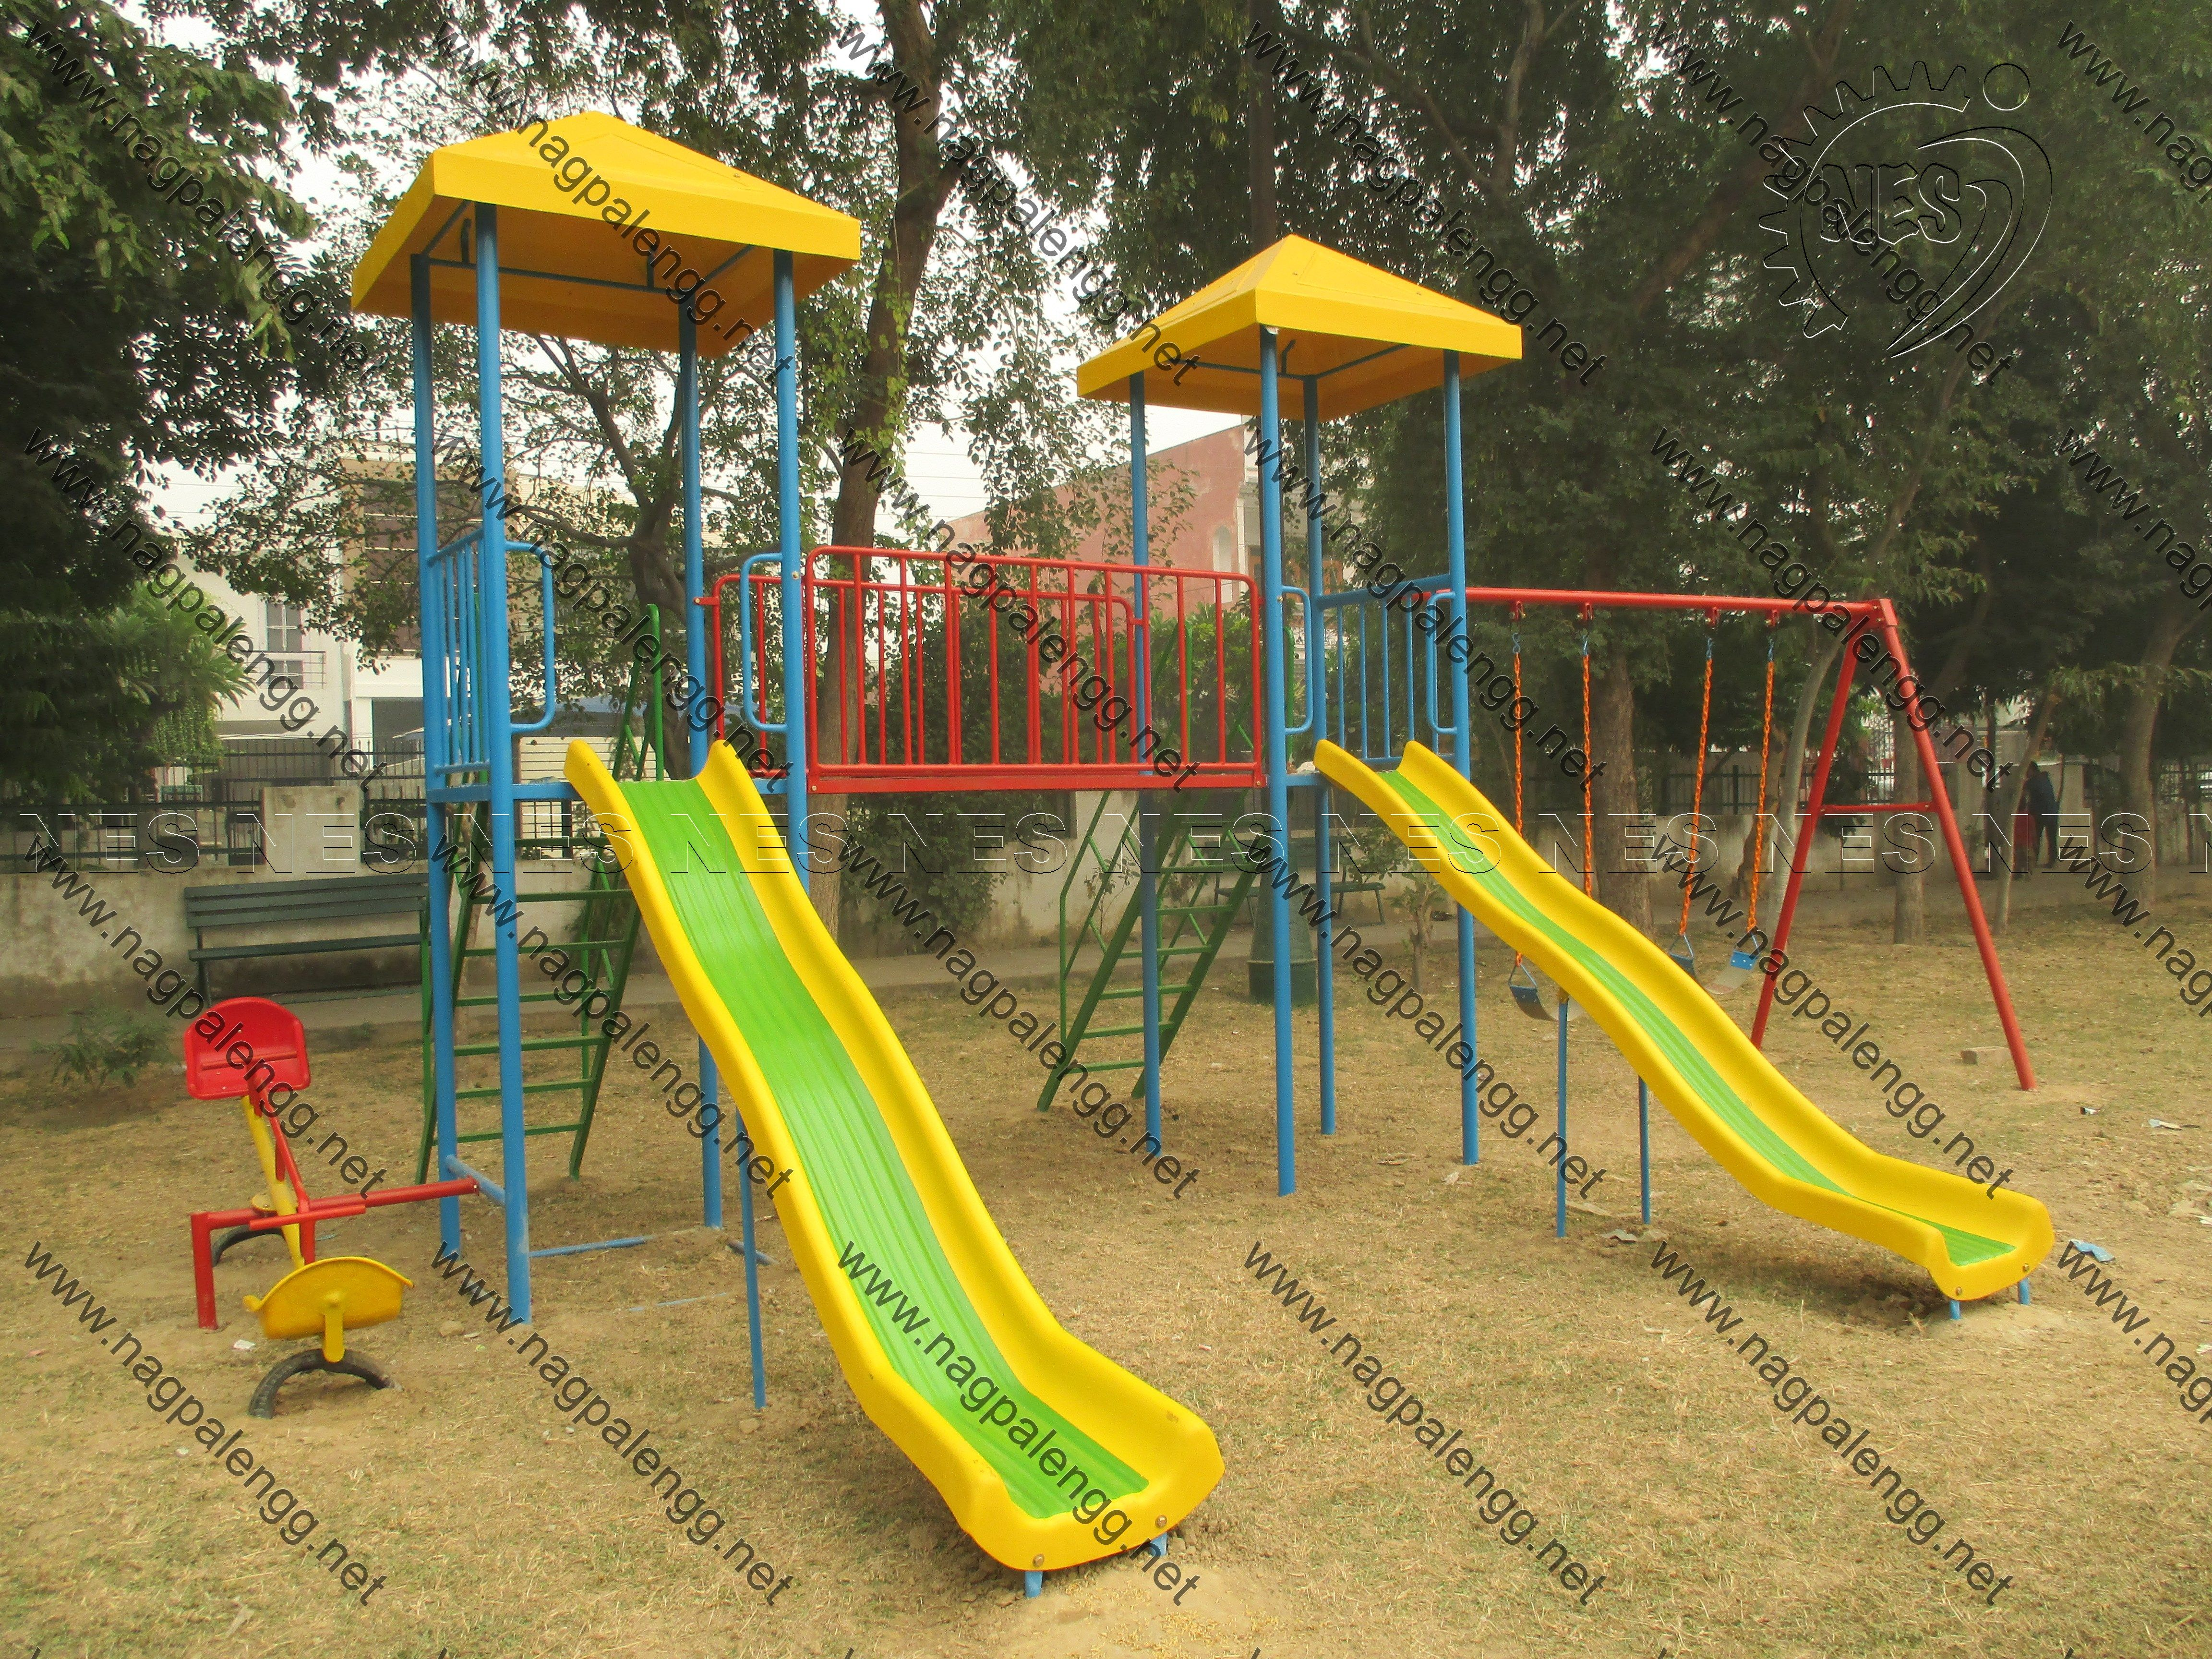 outdoor play equipment India, kids play equipment India ...